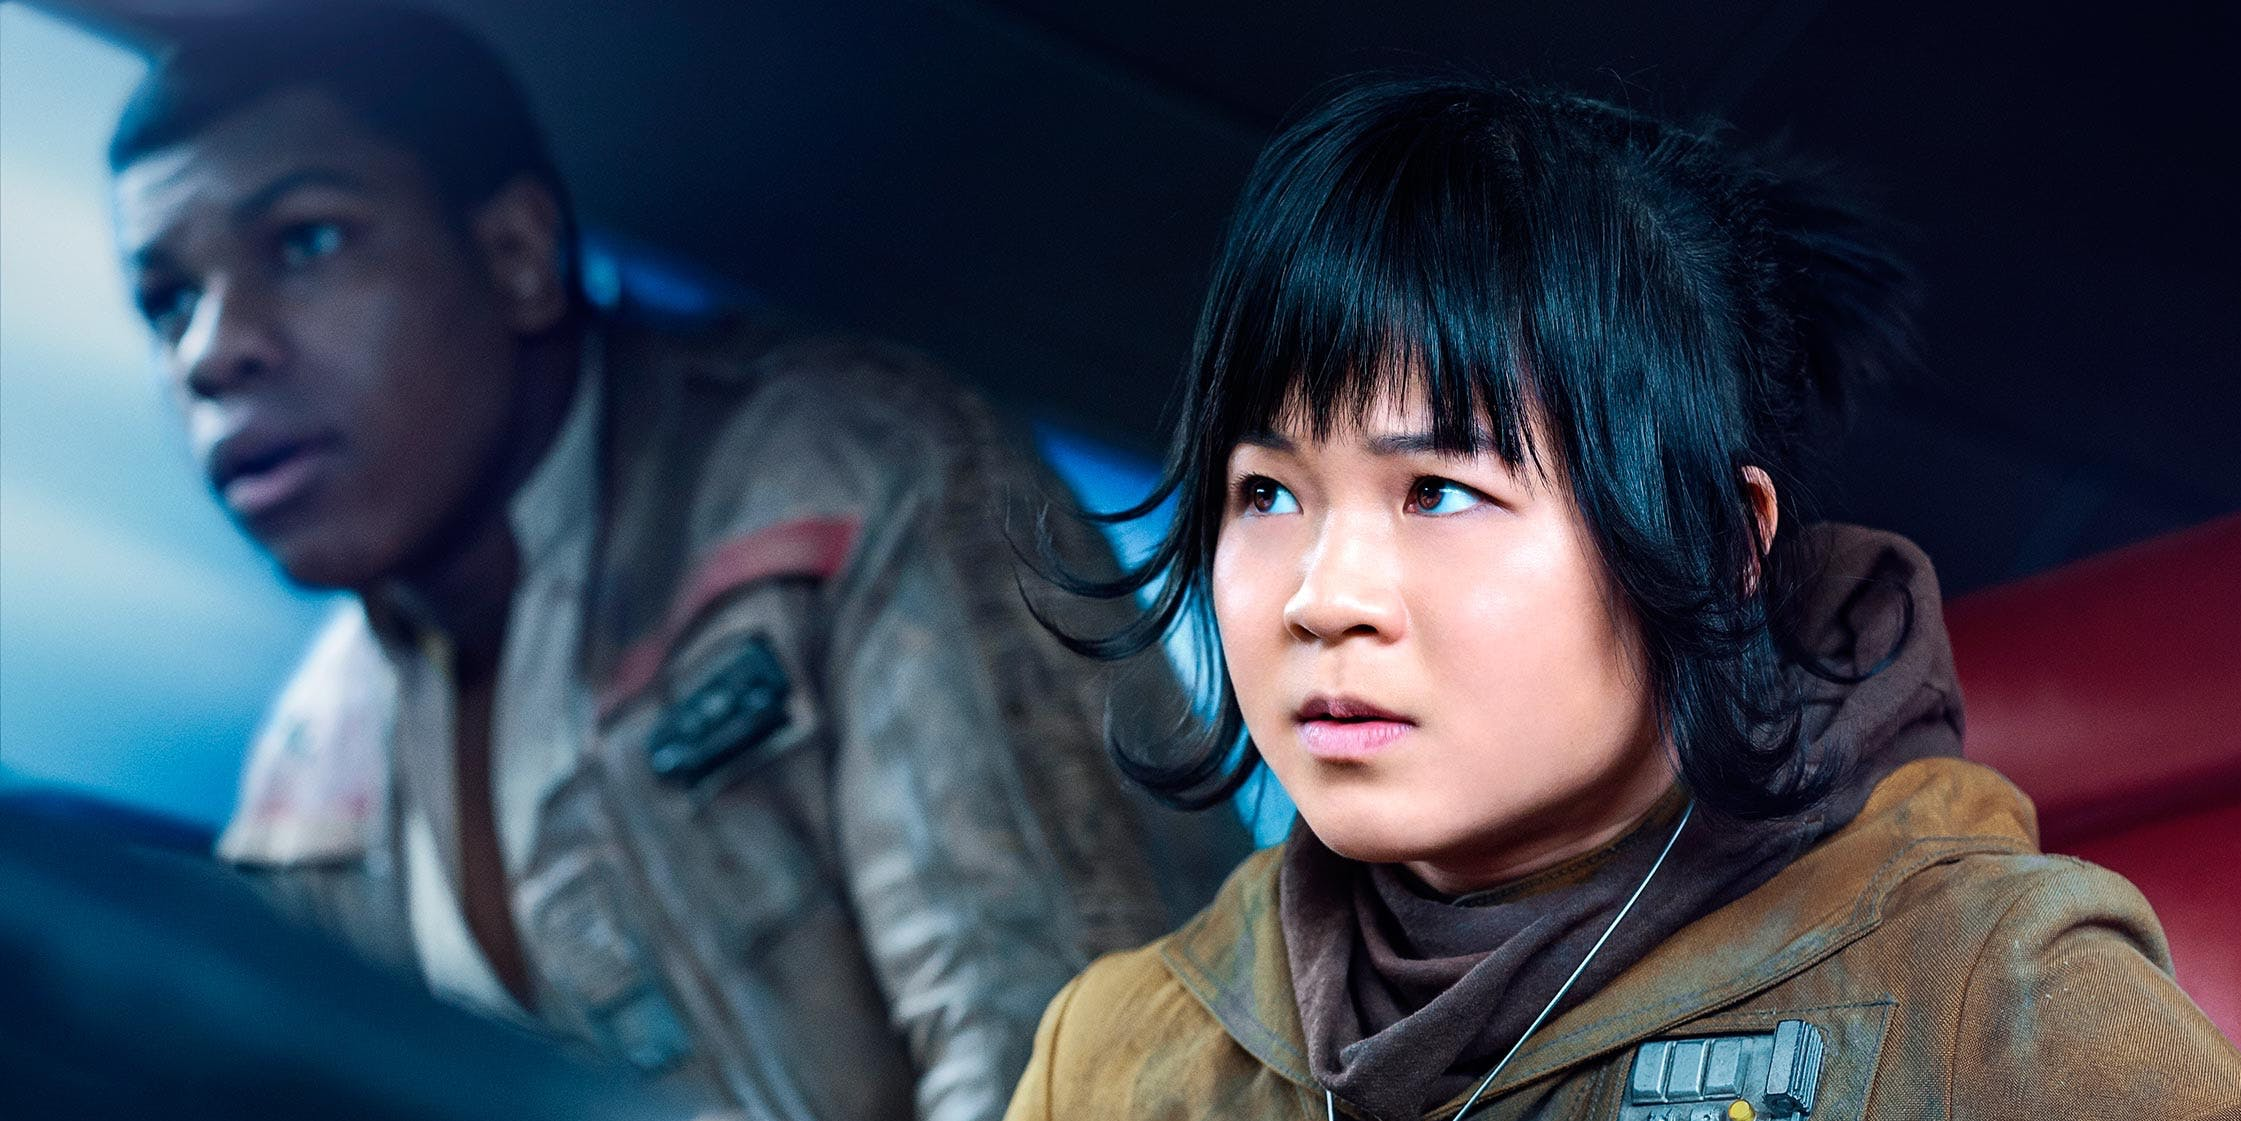 newcomer-rose-tico-has-been-around-in-th